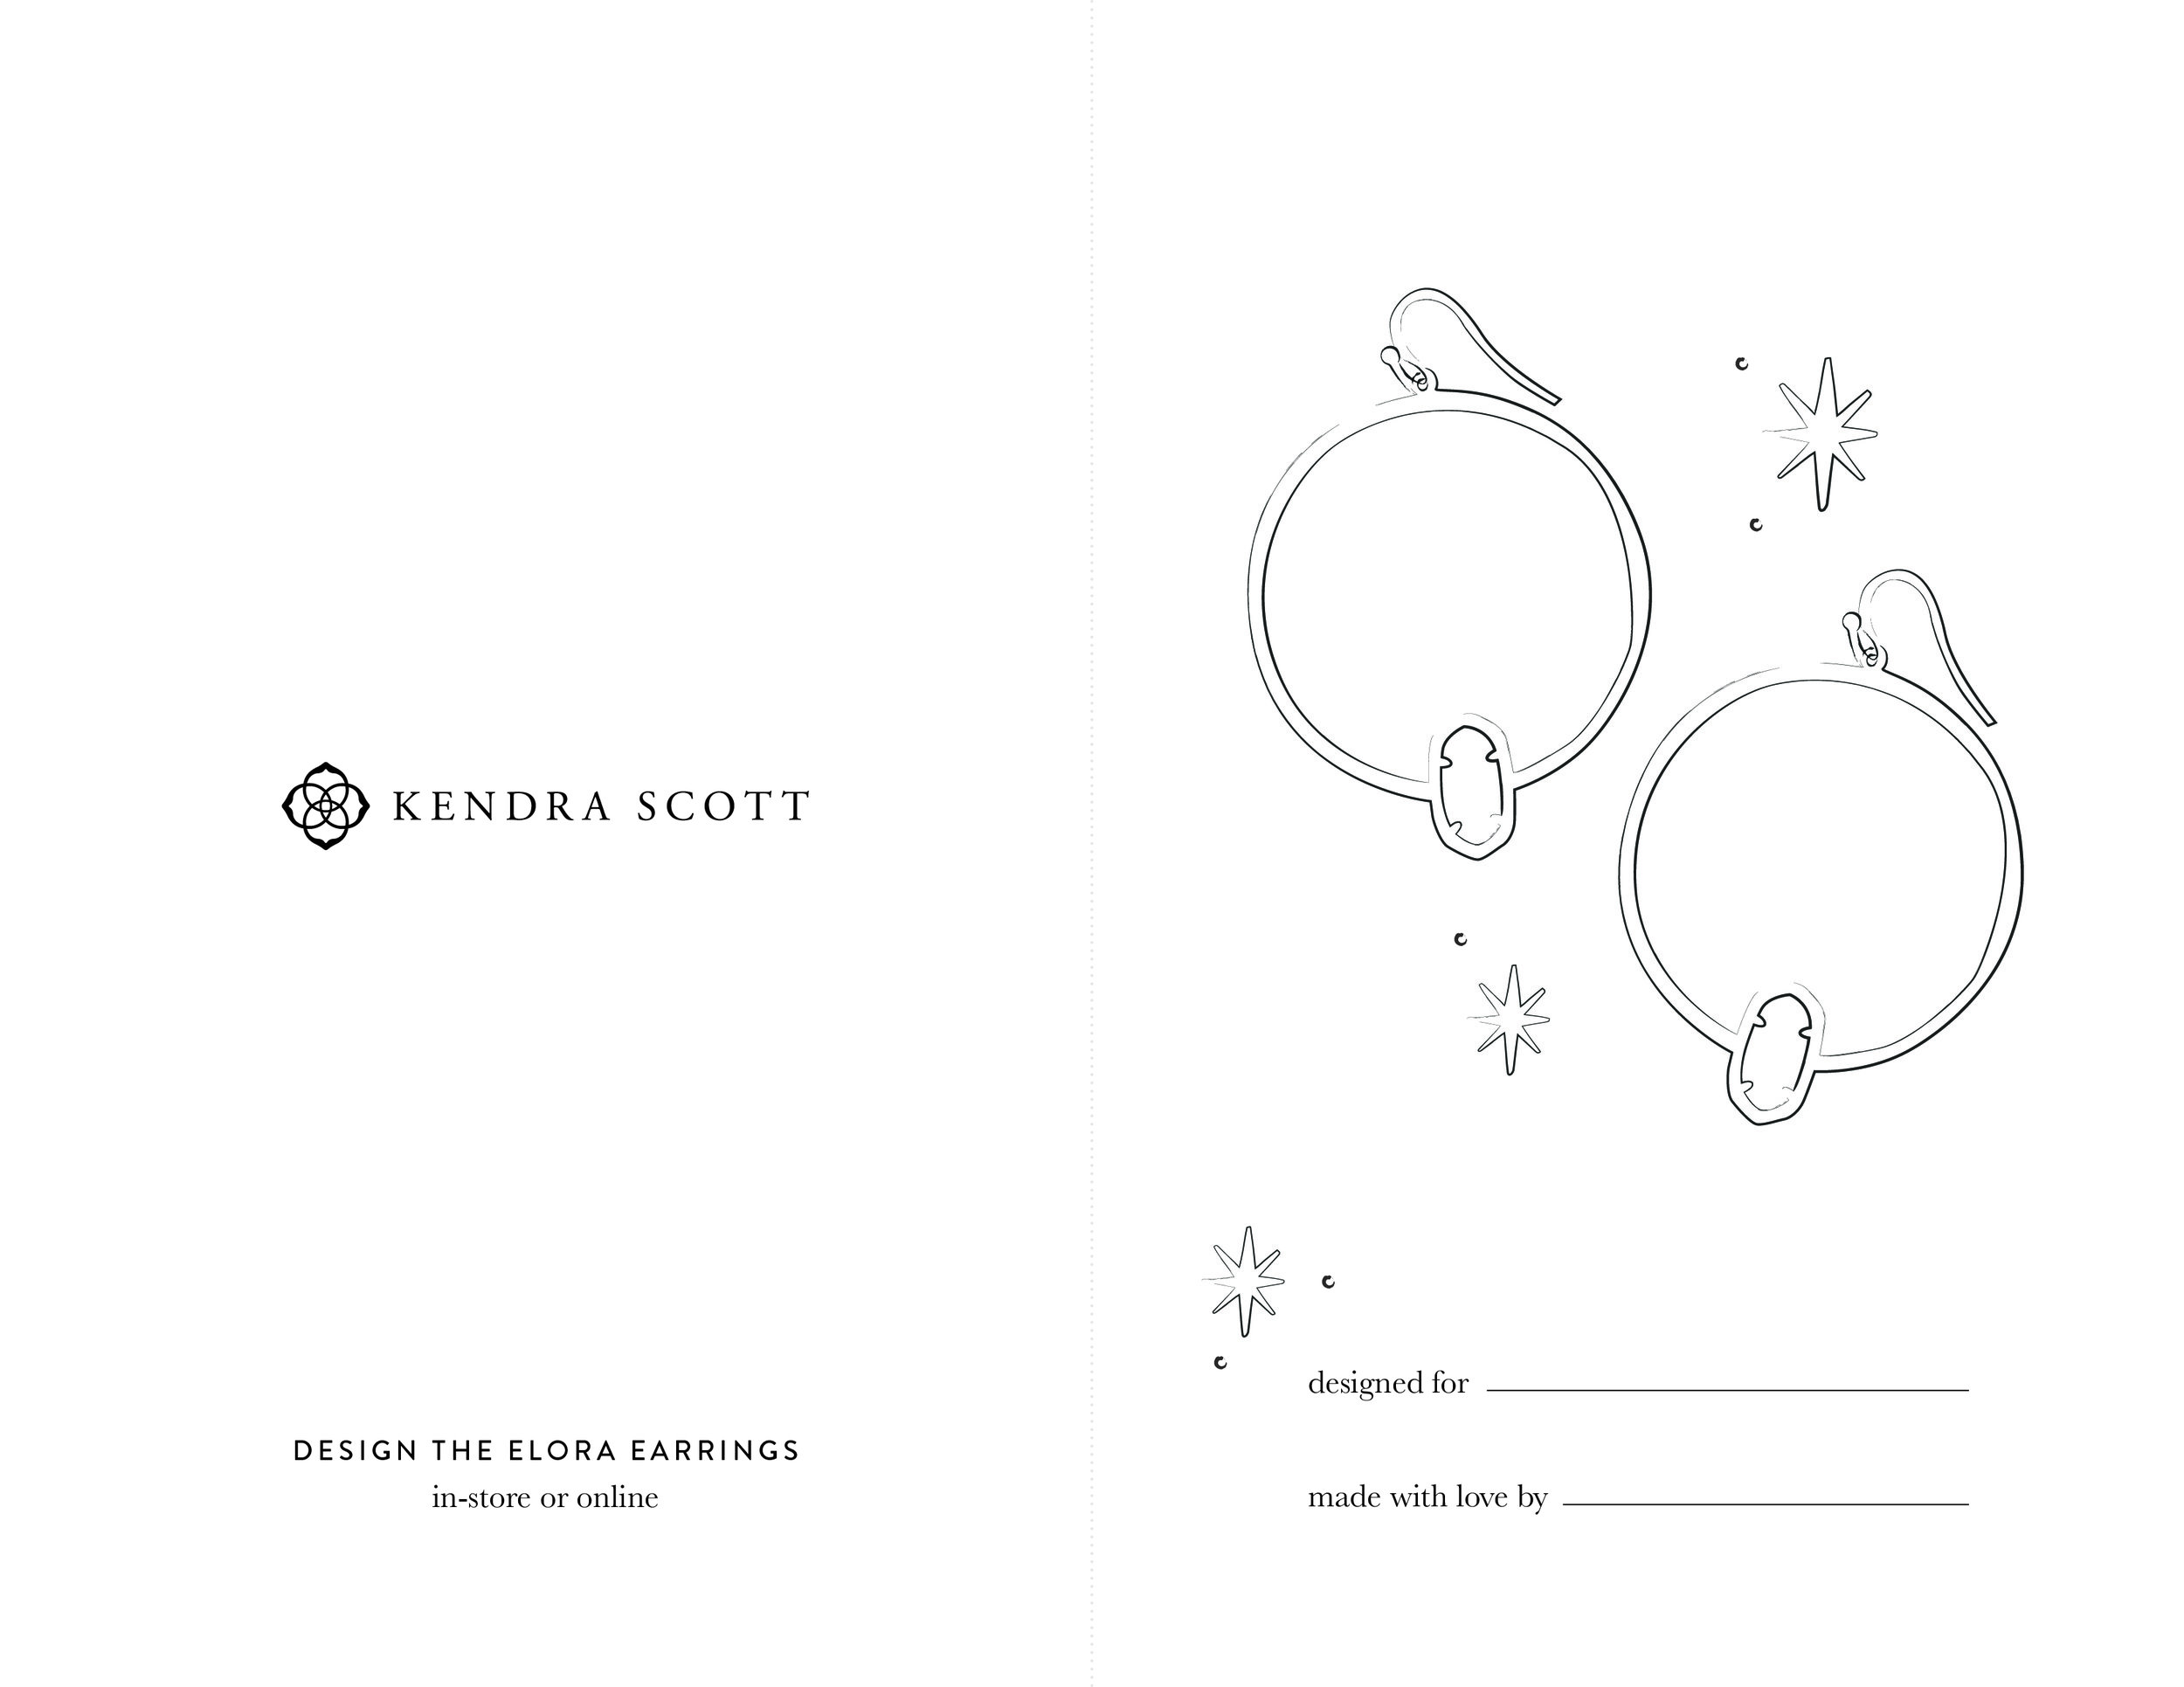 Kendra-Scott-Coloring-Sheets-03.jpg